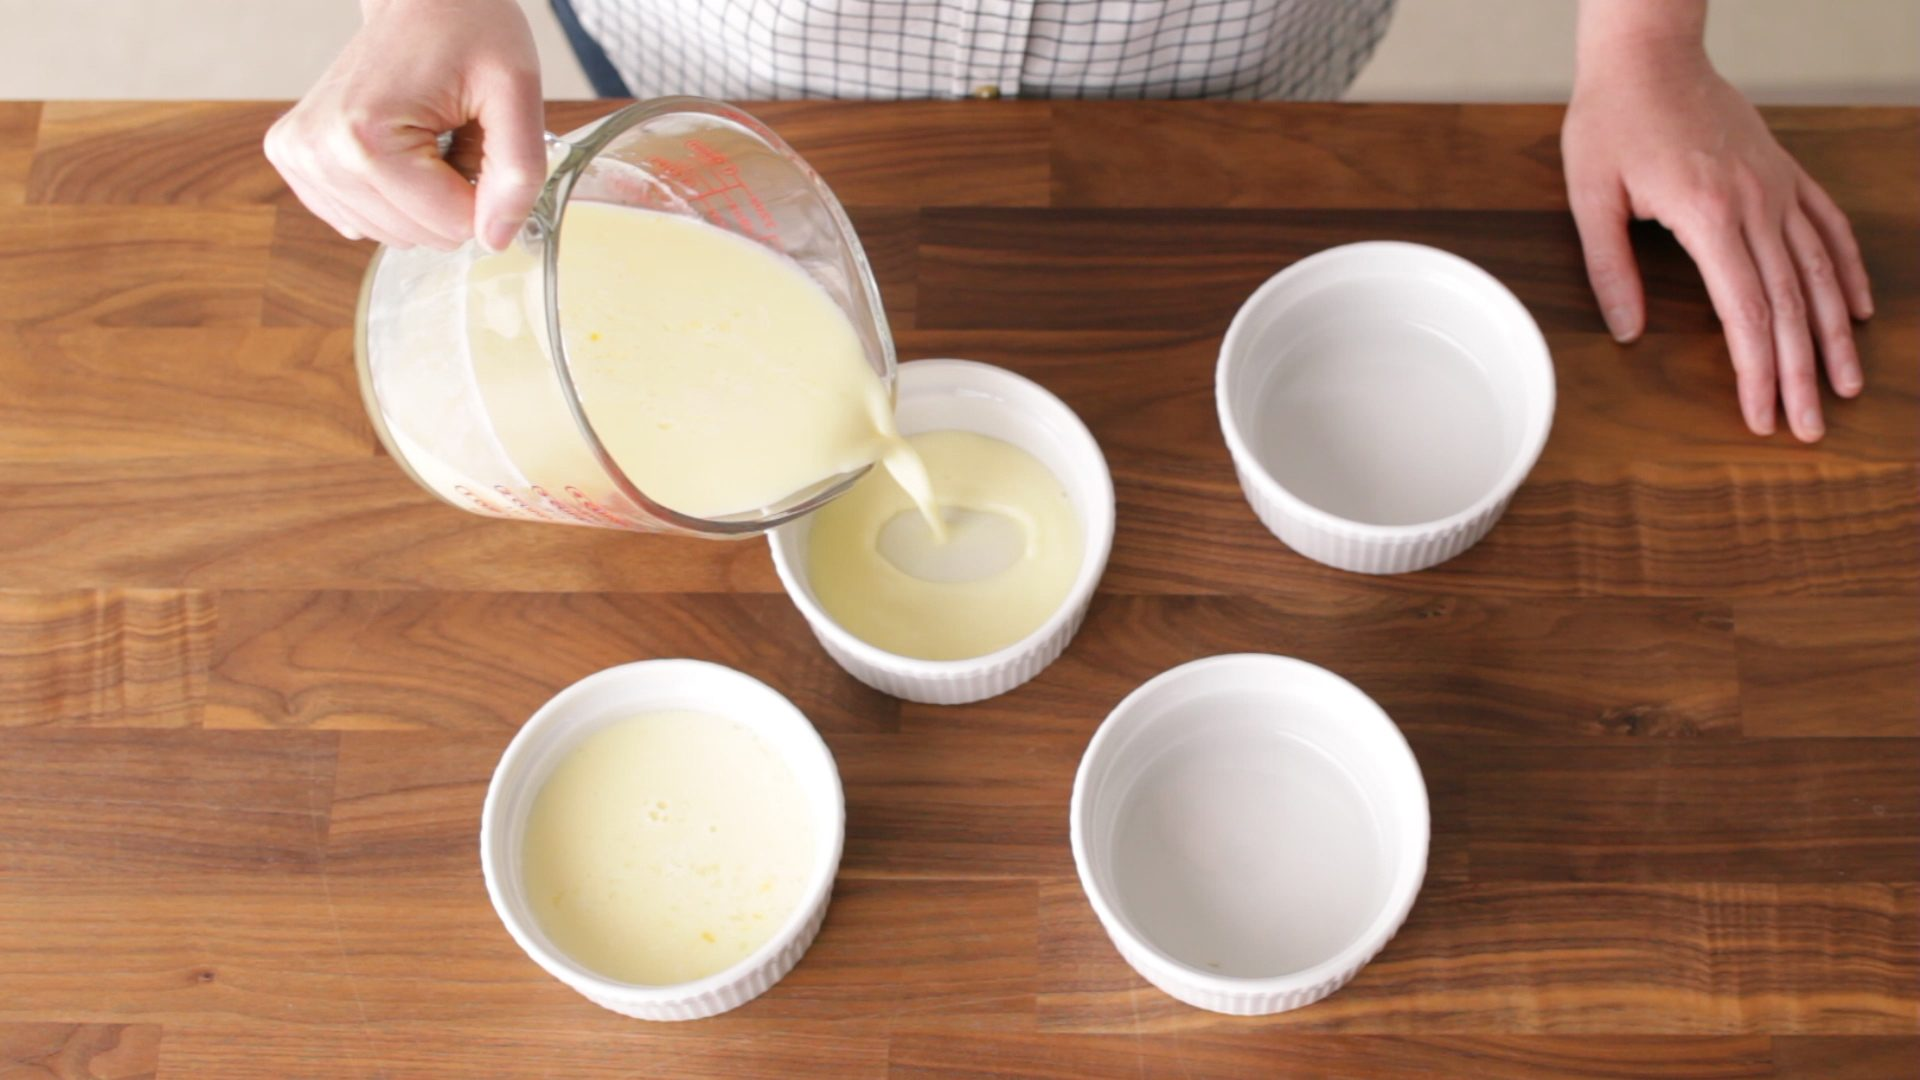 Pouring custard from a measuring cup into custard cups